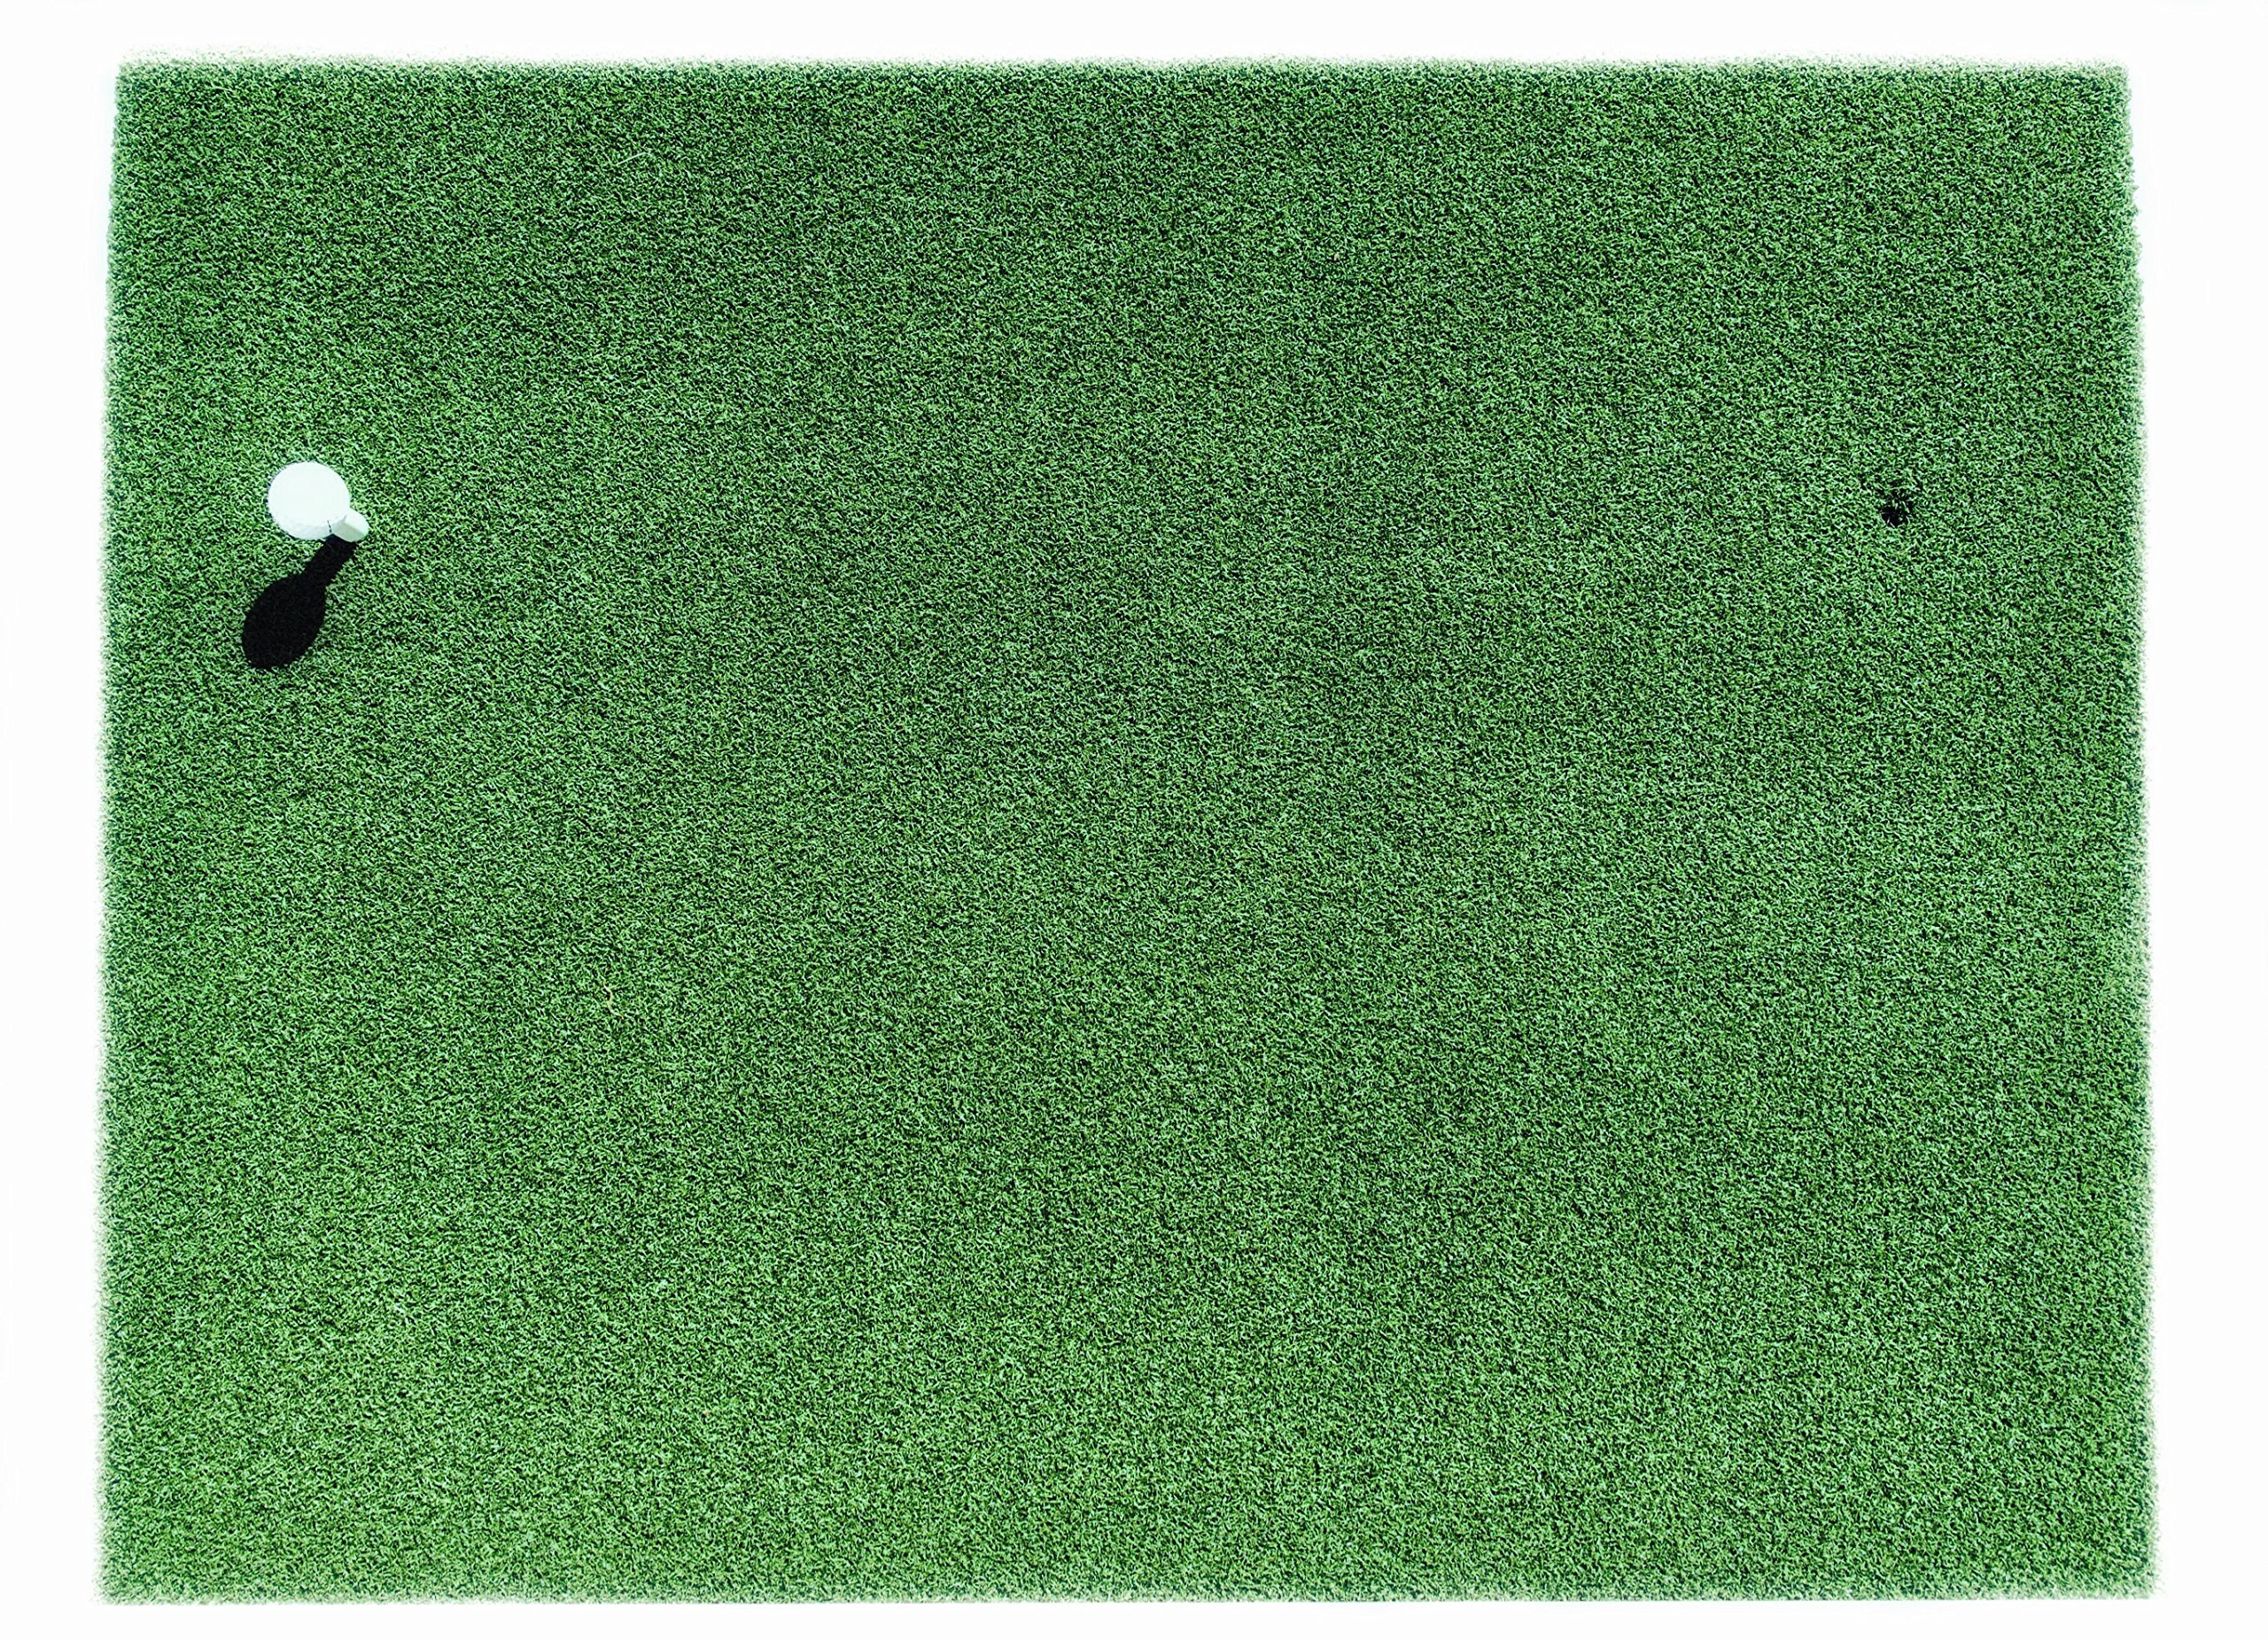 Fairway One Golf Hitting Mat (48in x 36in) by Motivo Golf